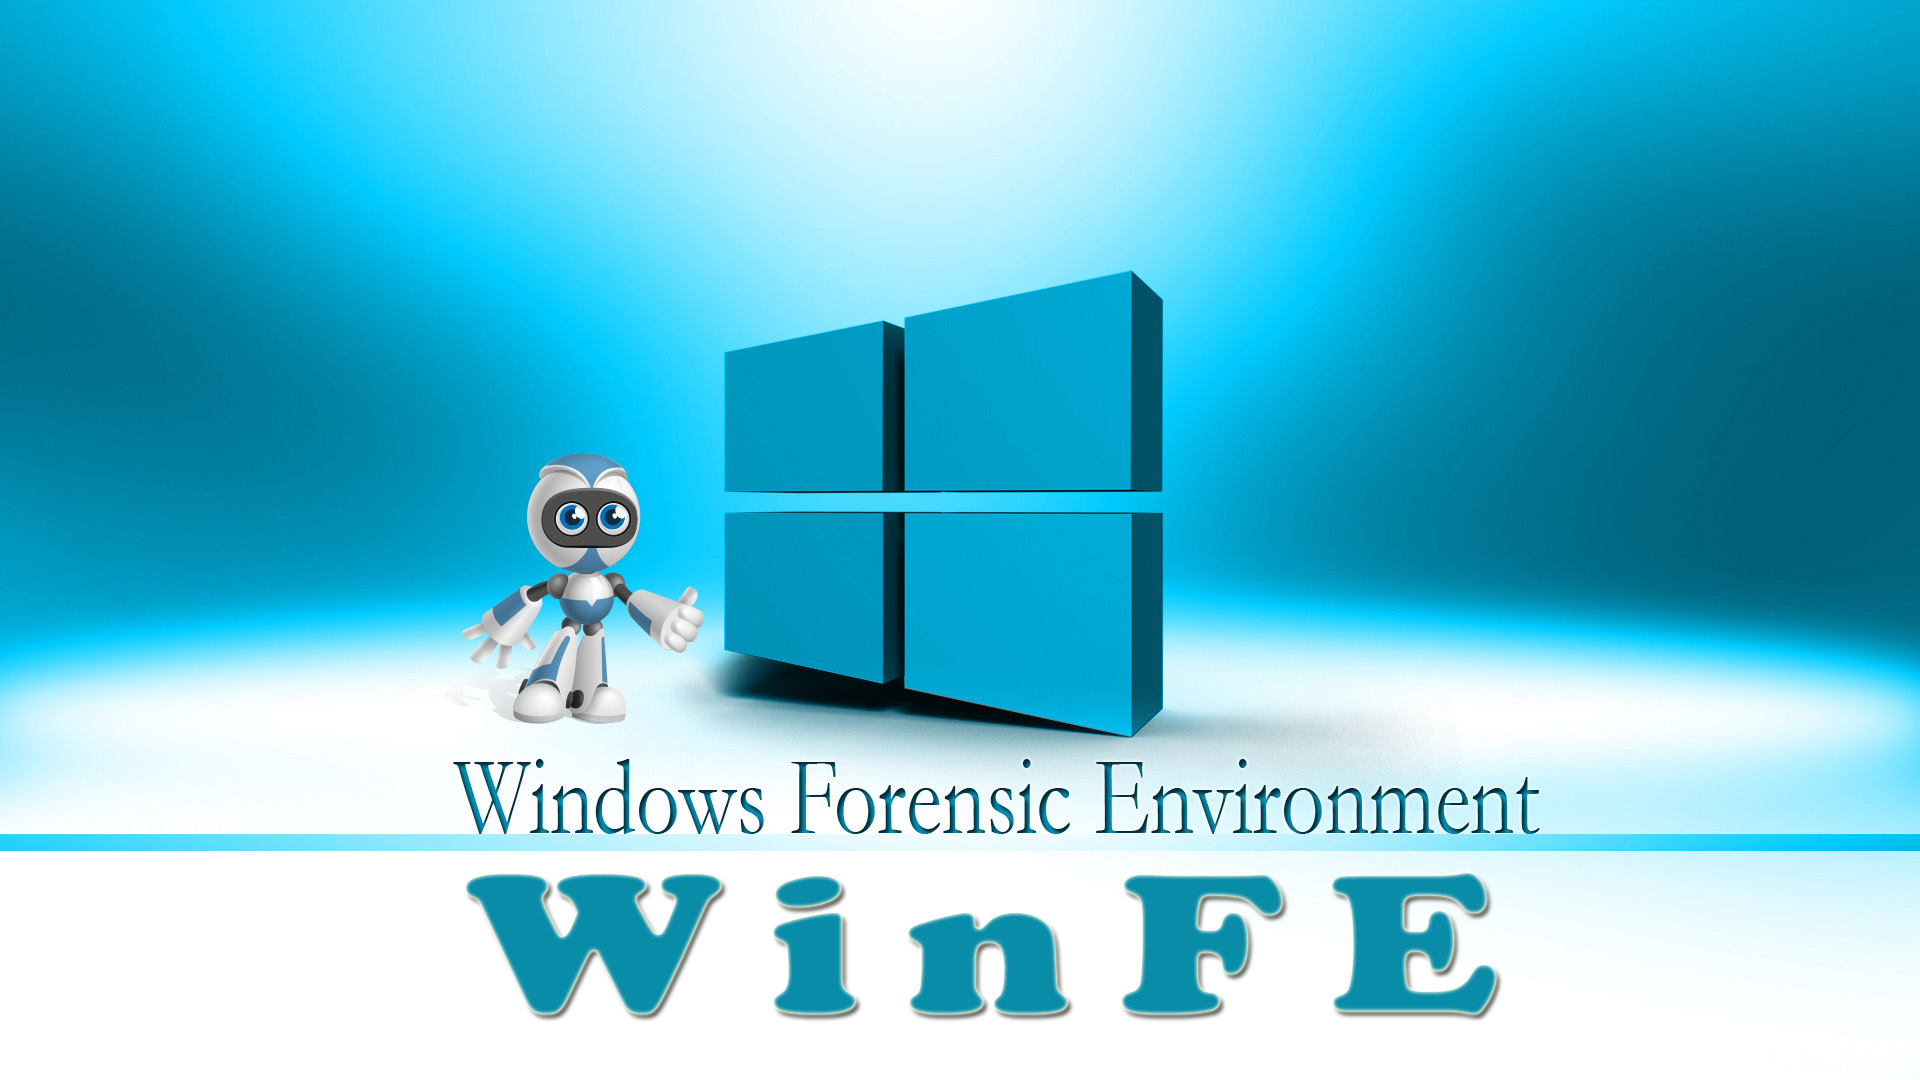 Windows Forensic Environment